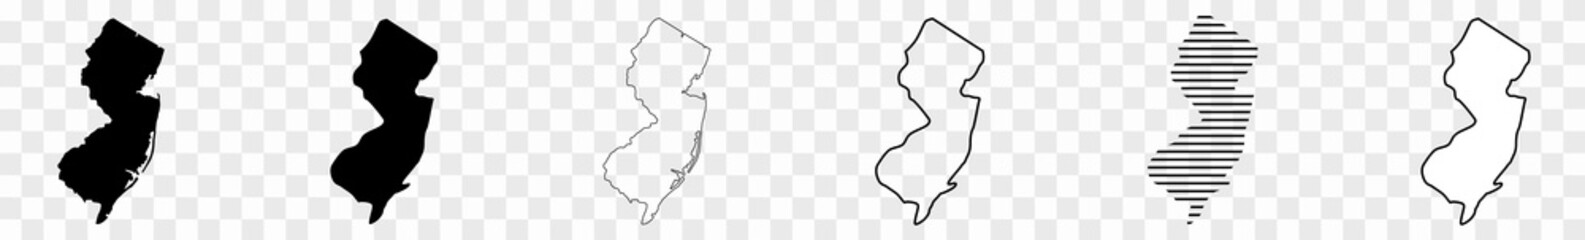 New Jersey Map Black | State Border | United States | US America | Transparent Isolated | Variations